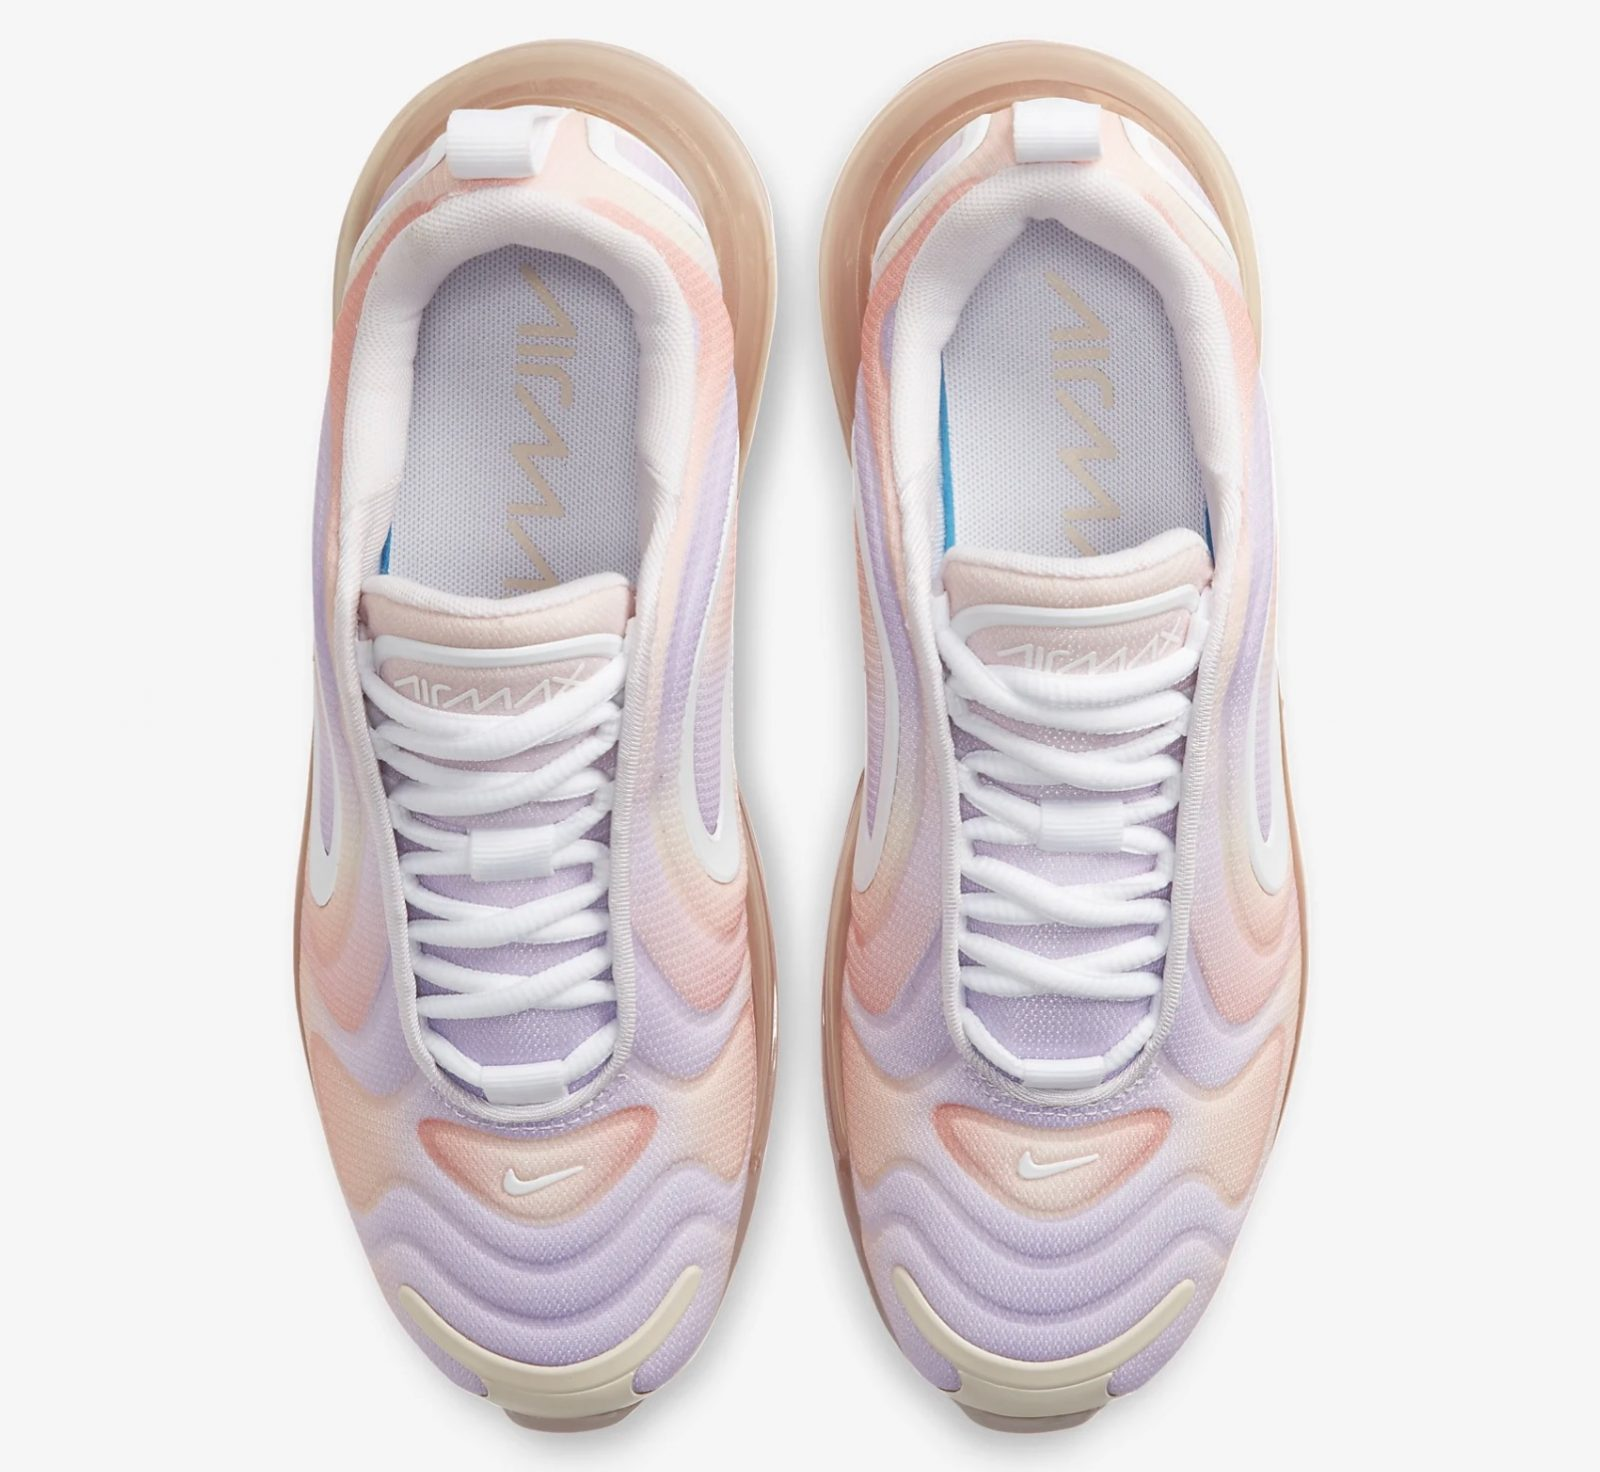 It Doesn't Get Prettier Than This Tie-Dye Style Air Max 720 'Print' In Light Violet 4 laaces